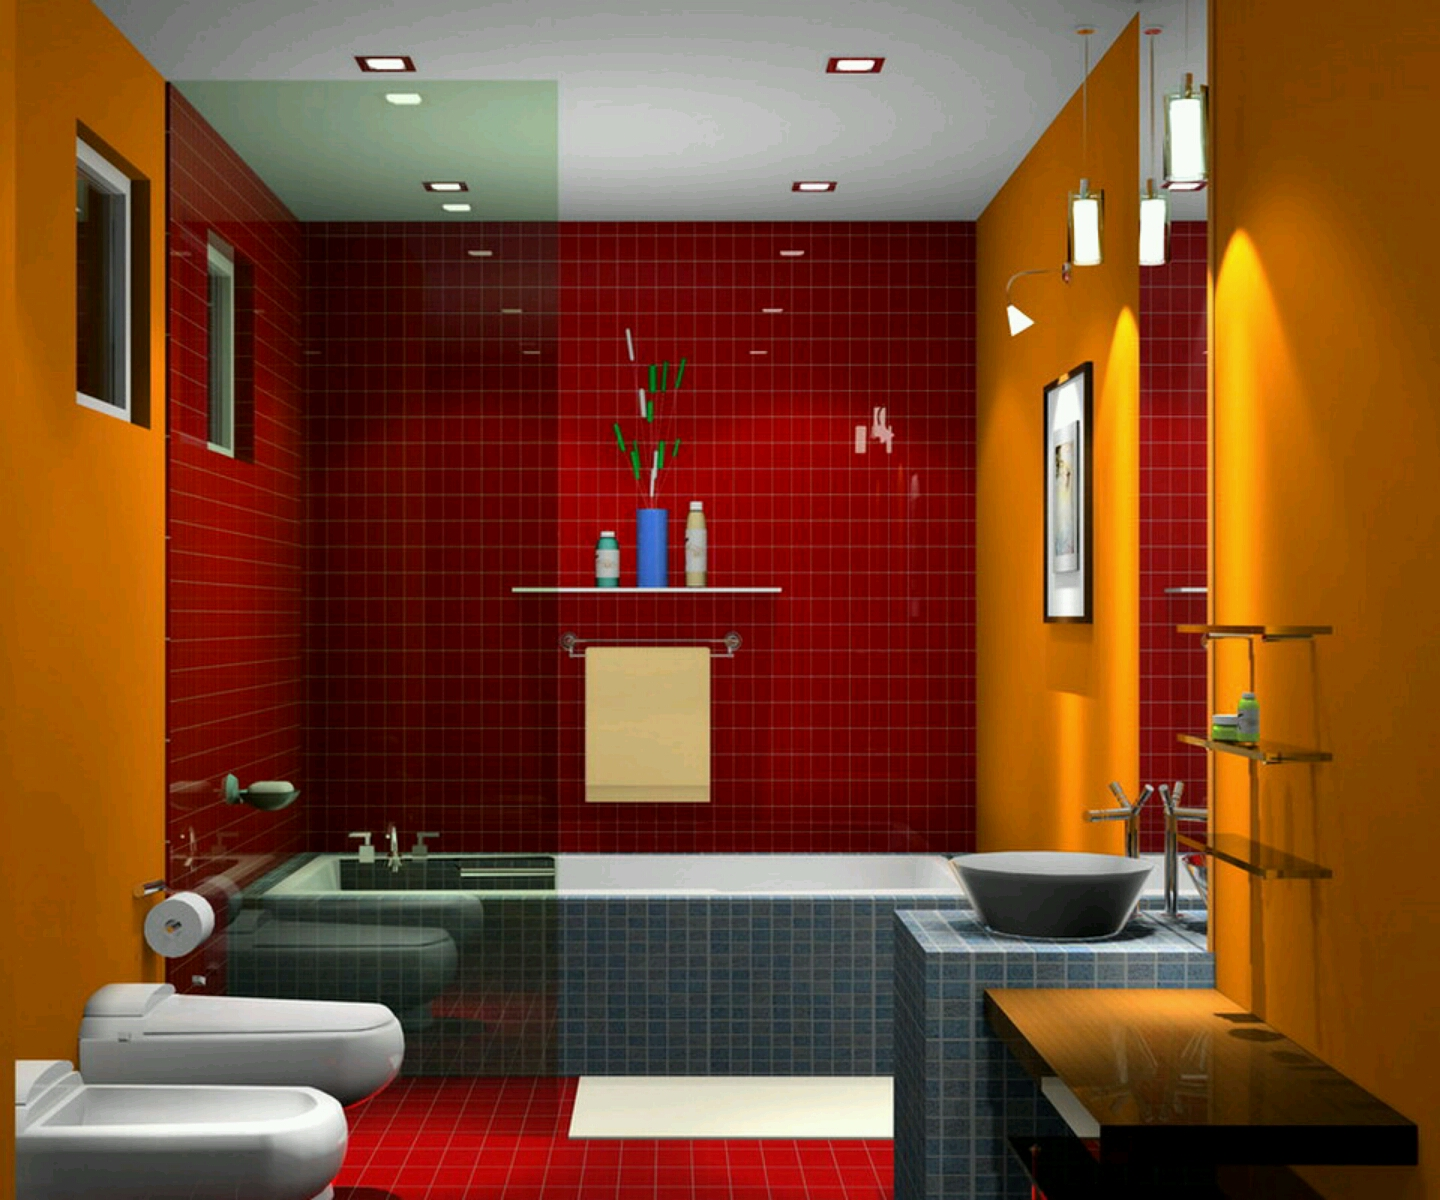 New home designs latest luxury bathrooms designs ideas for New bathtub designs